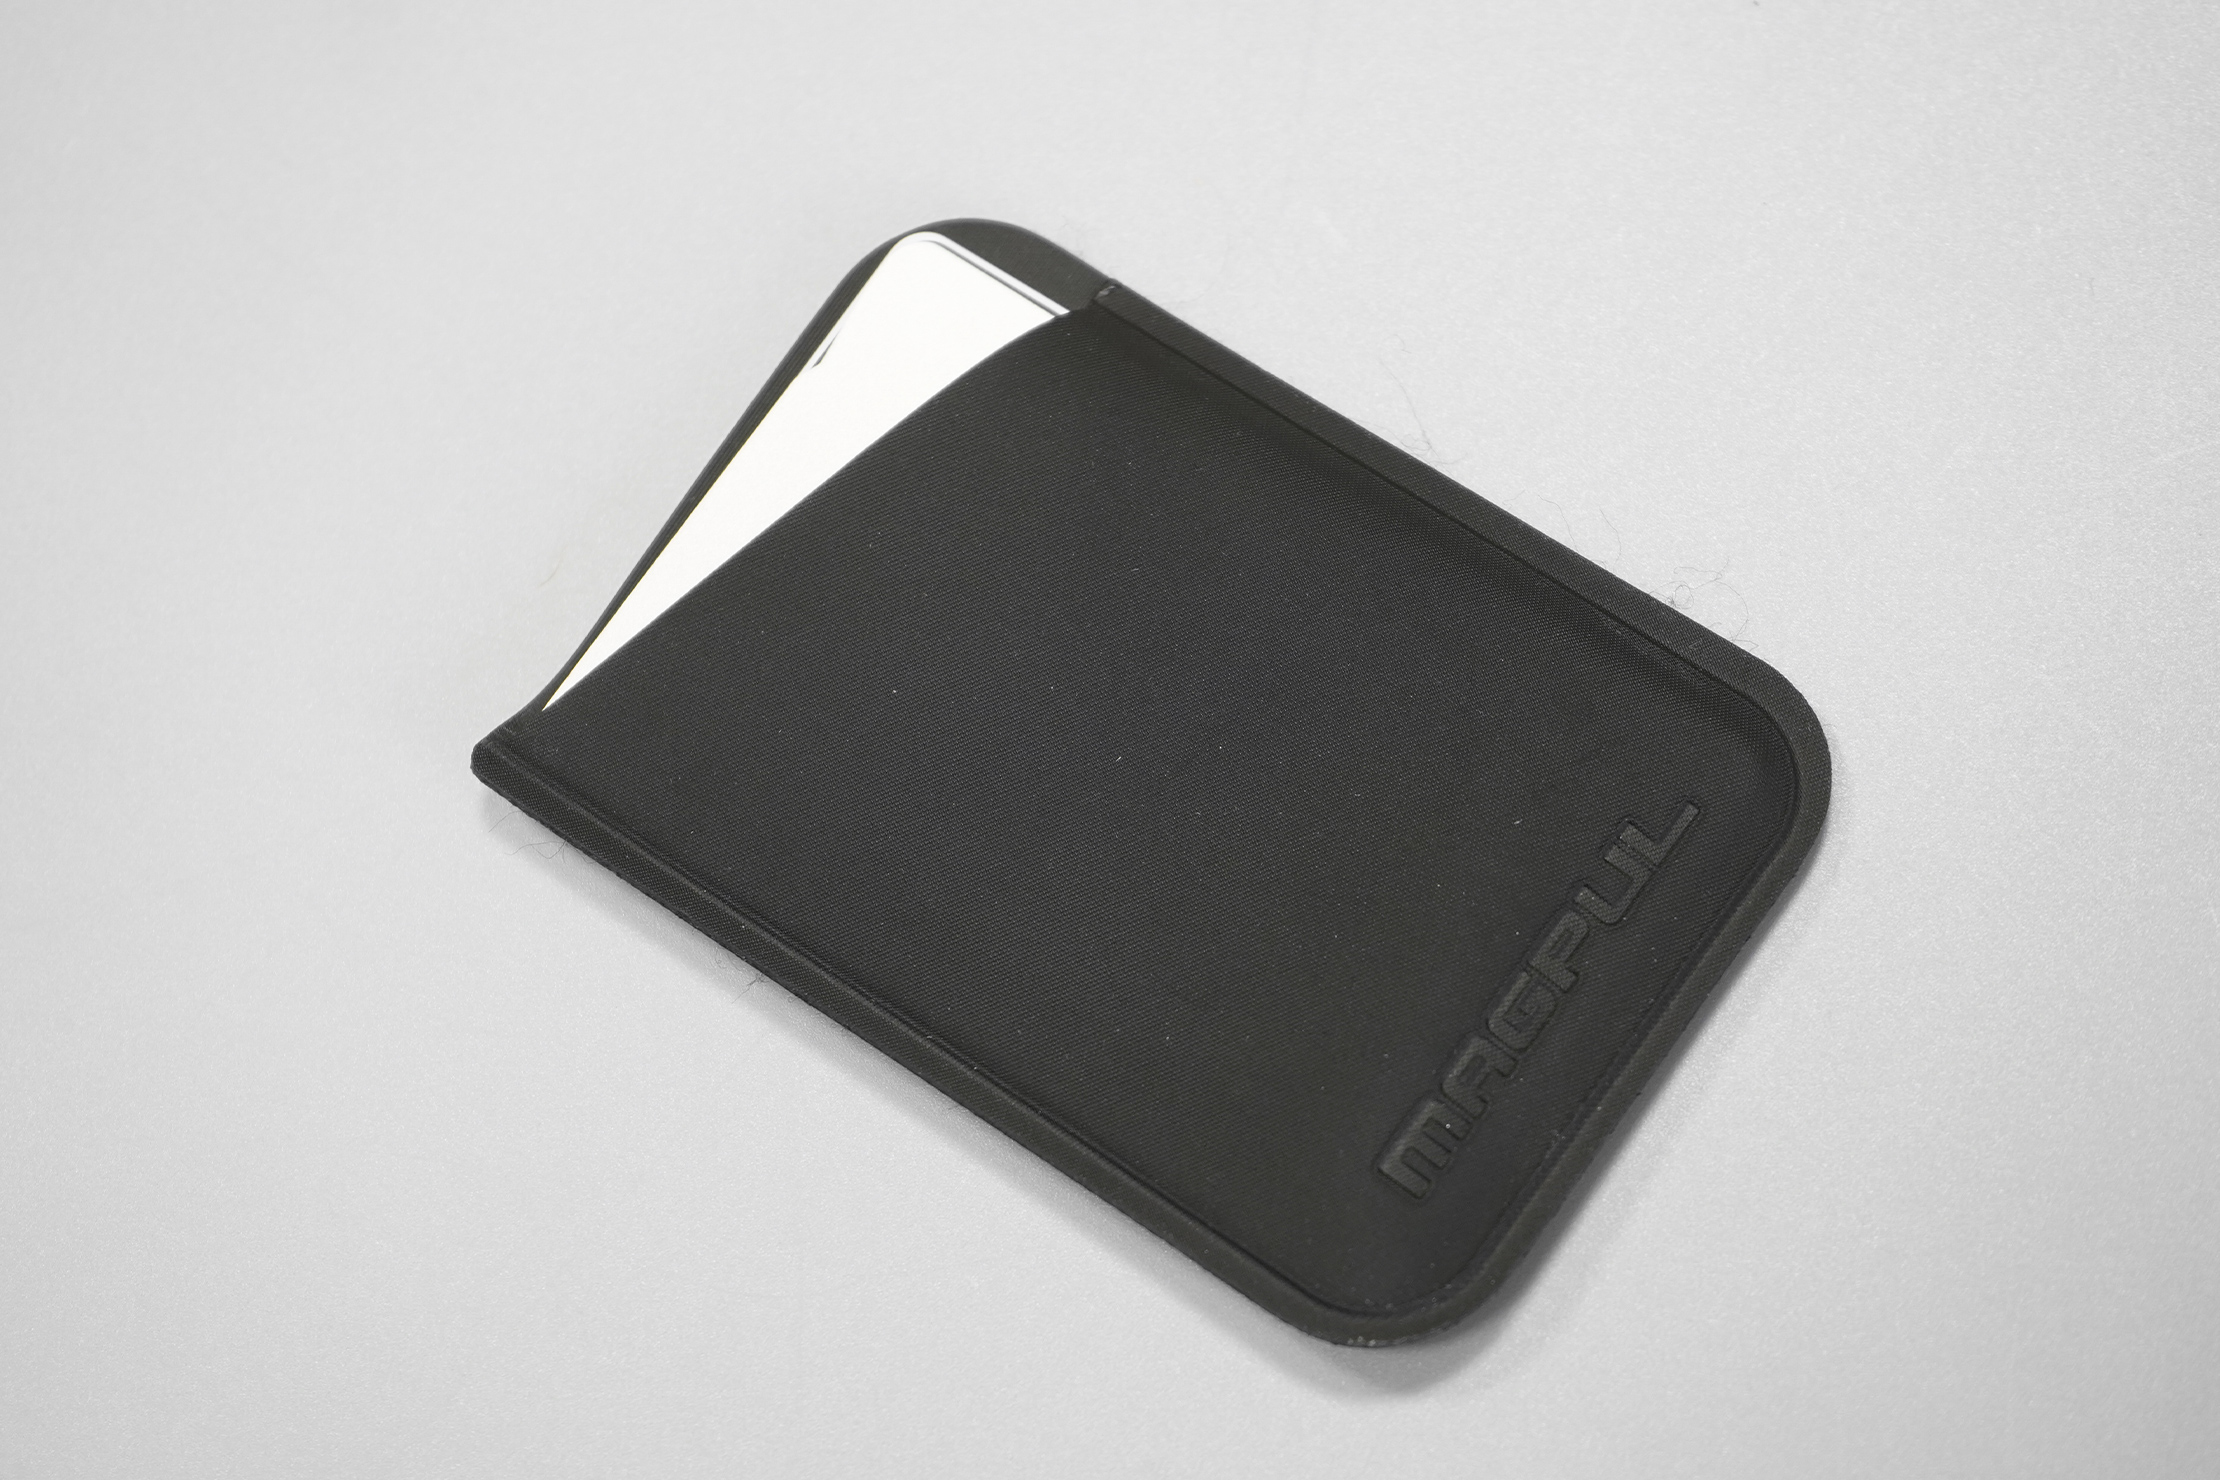 Magpul DAKA Micro Wallet   The debossed logo and polymer fabric, with some fraying at the edges.